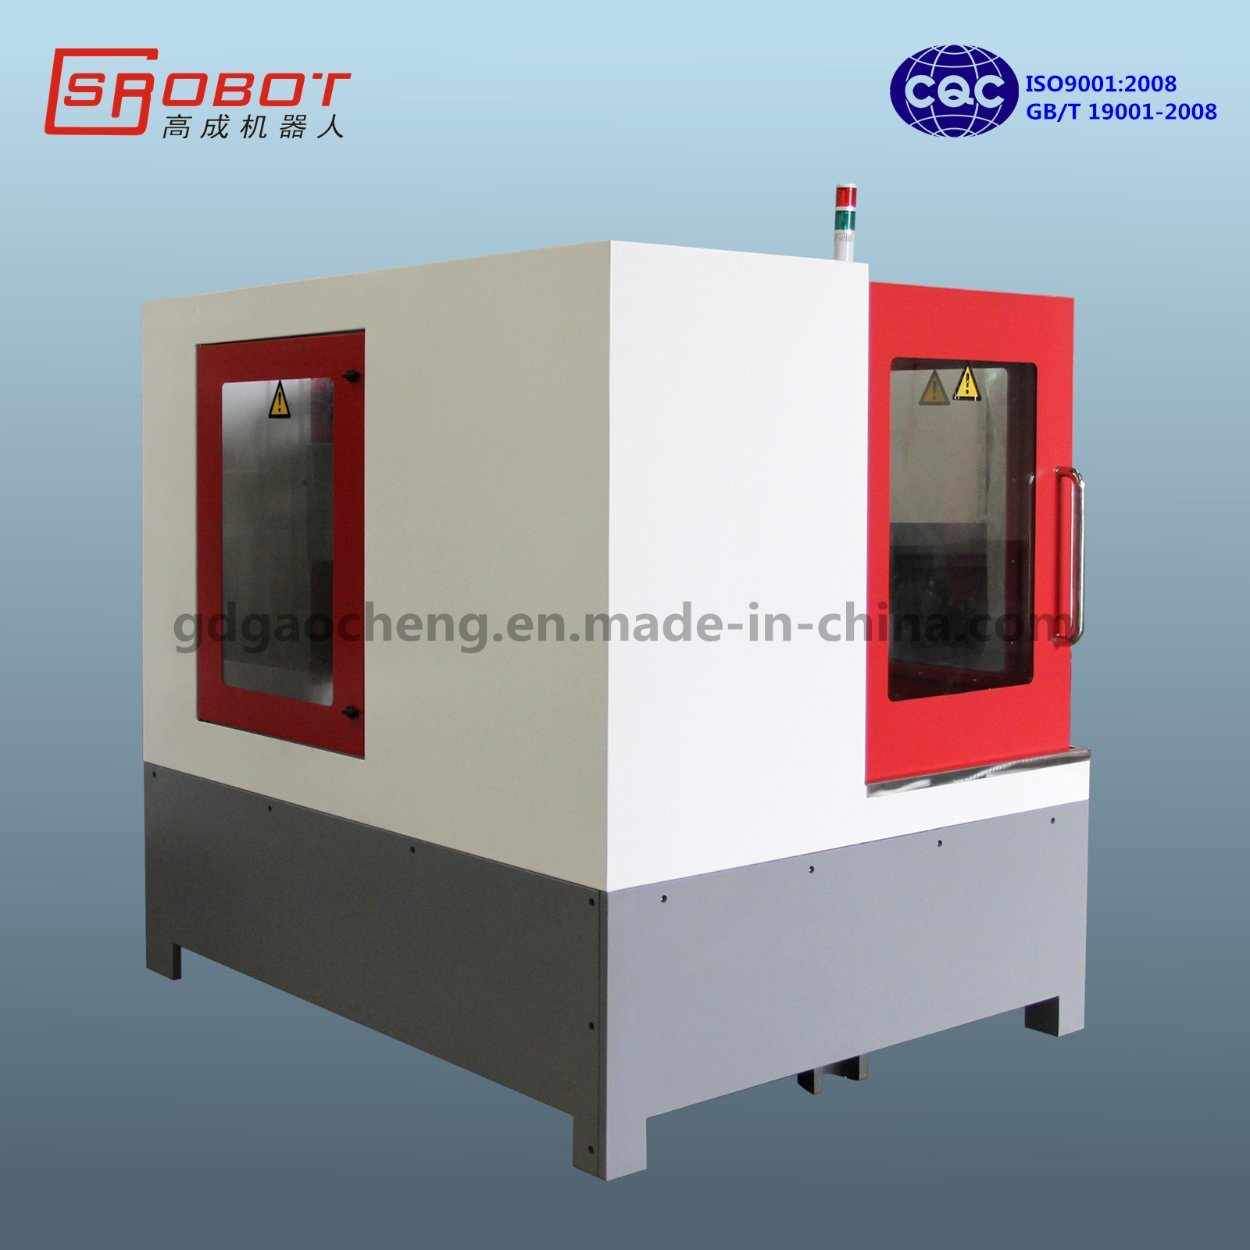 500 X 600mm High Speed CNC Engraving and Milling Machine GS-E650